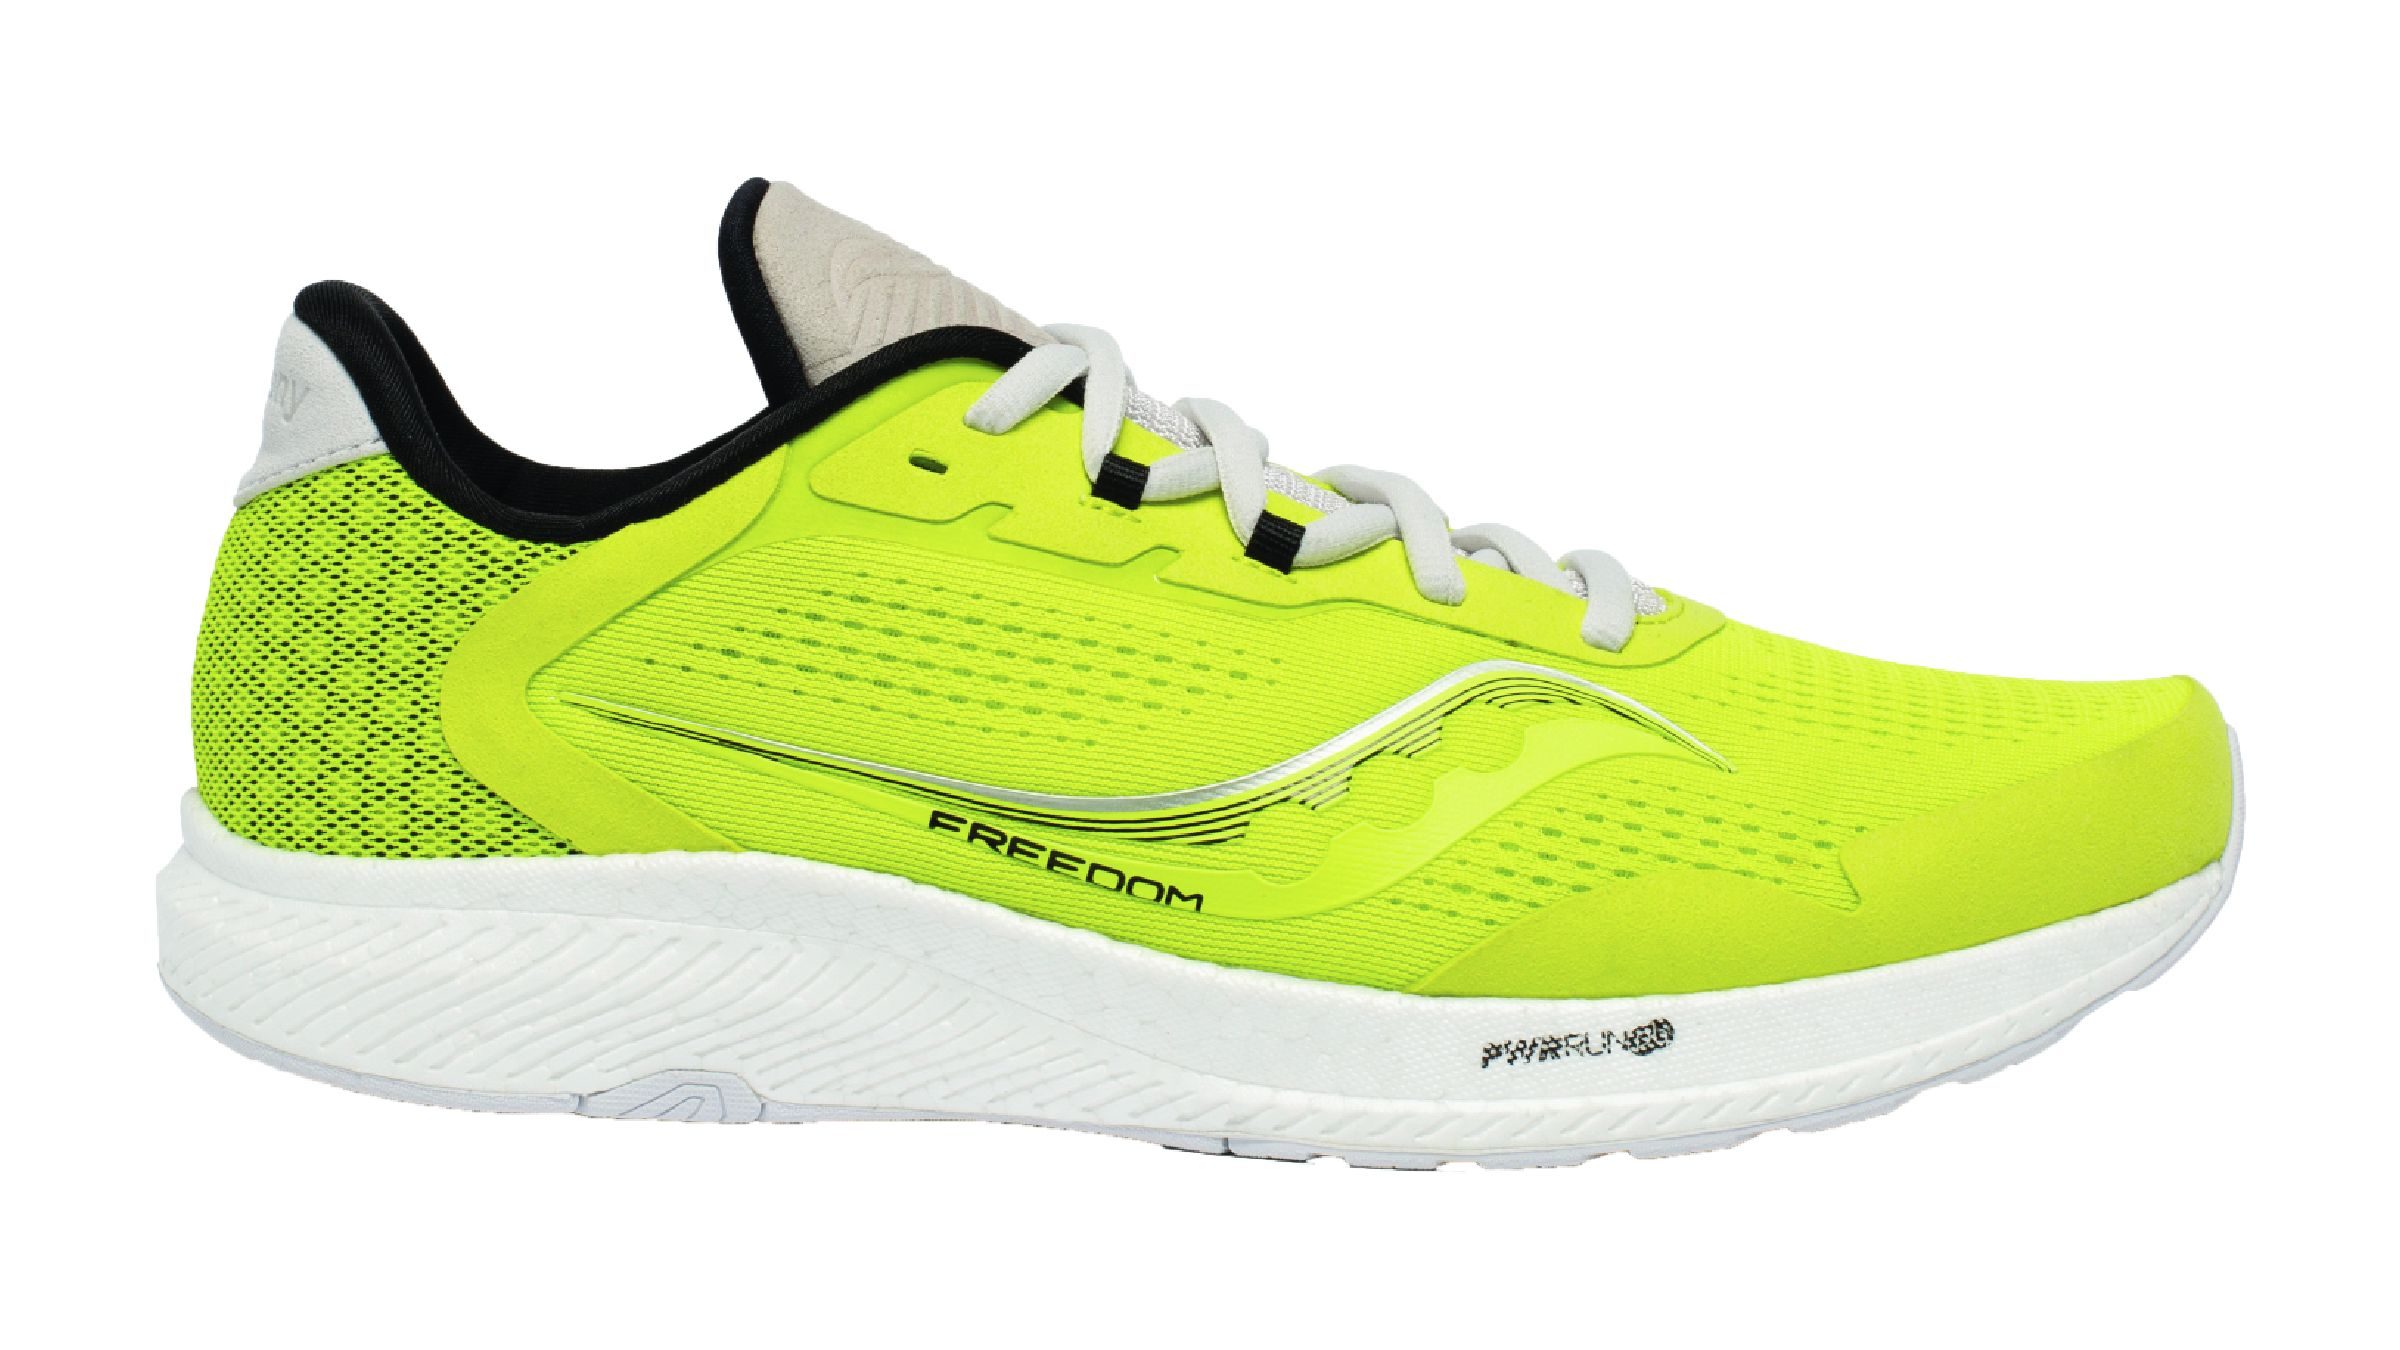 Neon yellow Saucony Freedom running shoe